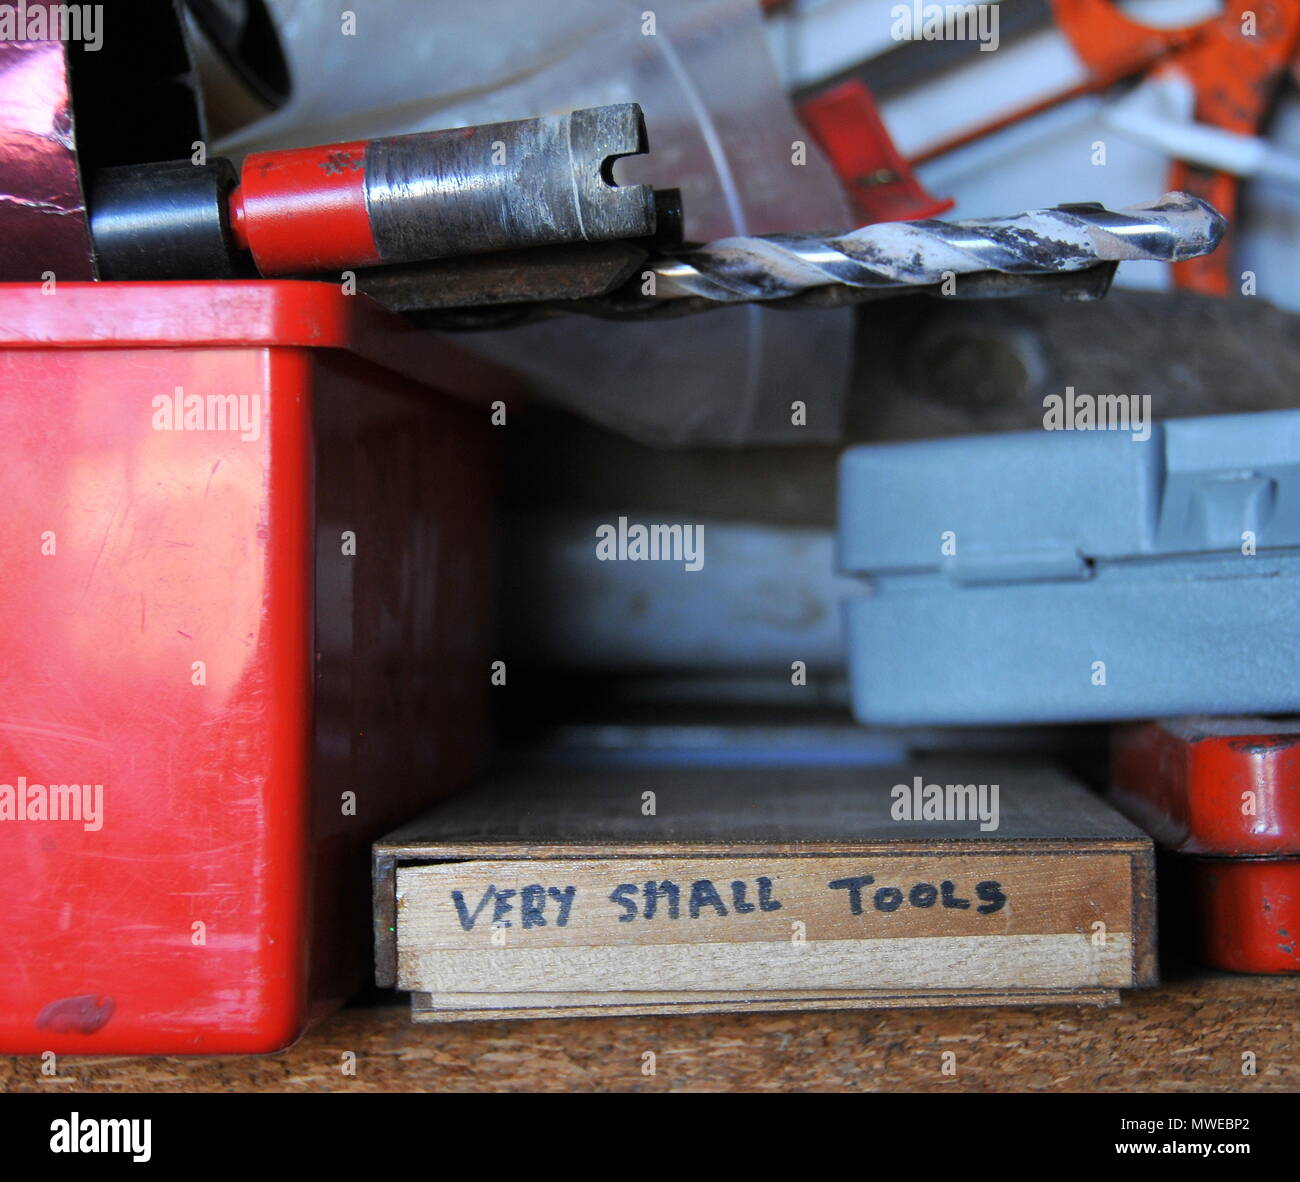 Tools on a shelf, with the smallest labelled and collected into a handy box - Stock Image